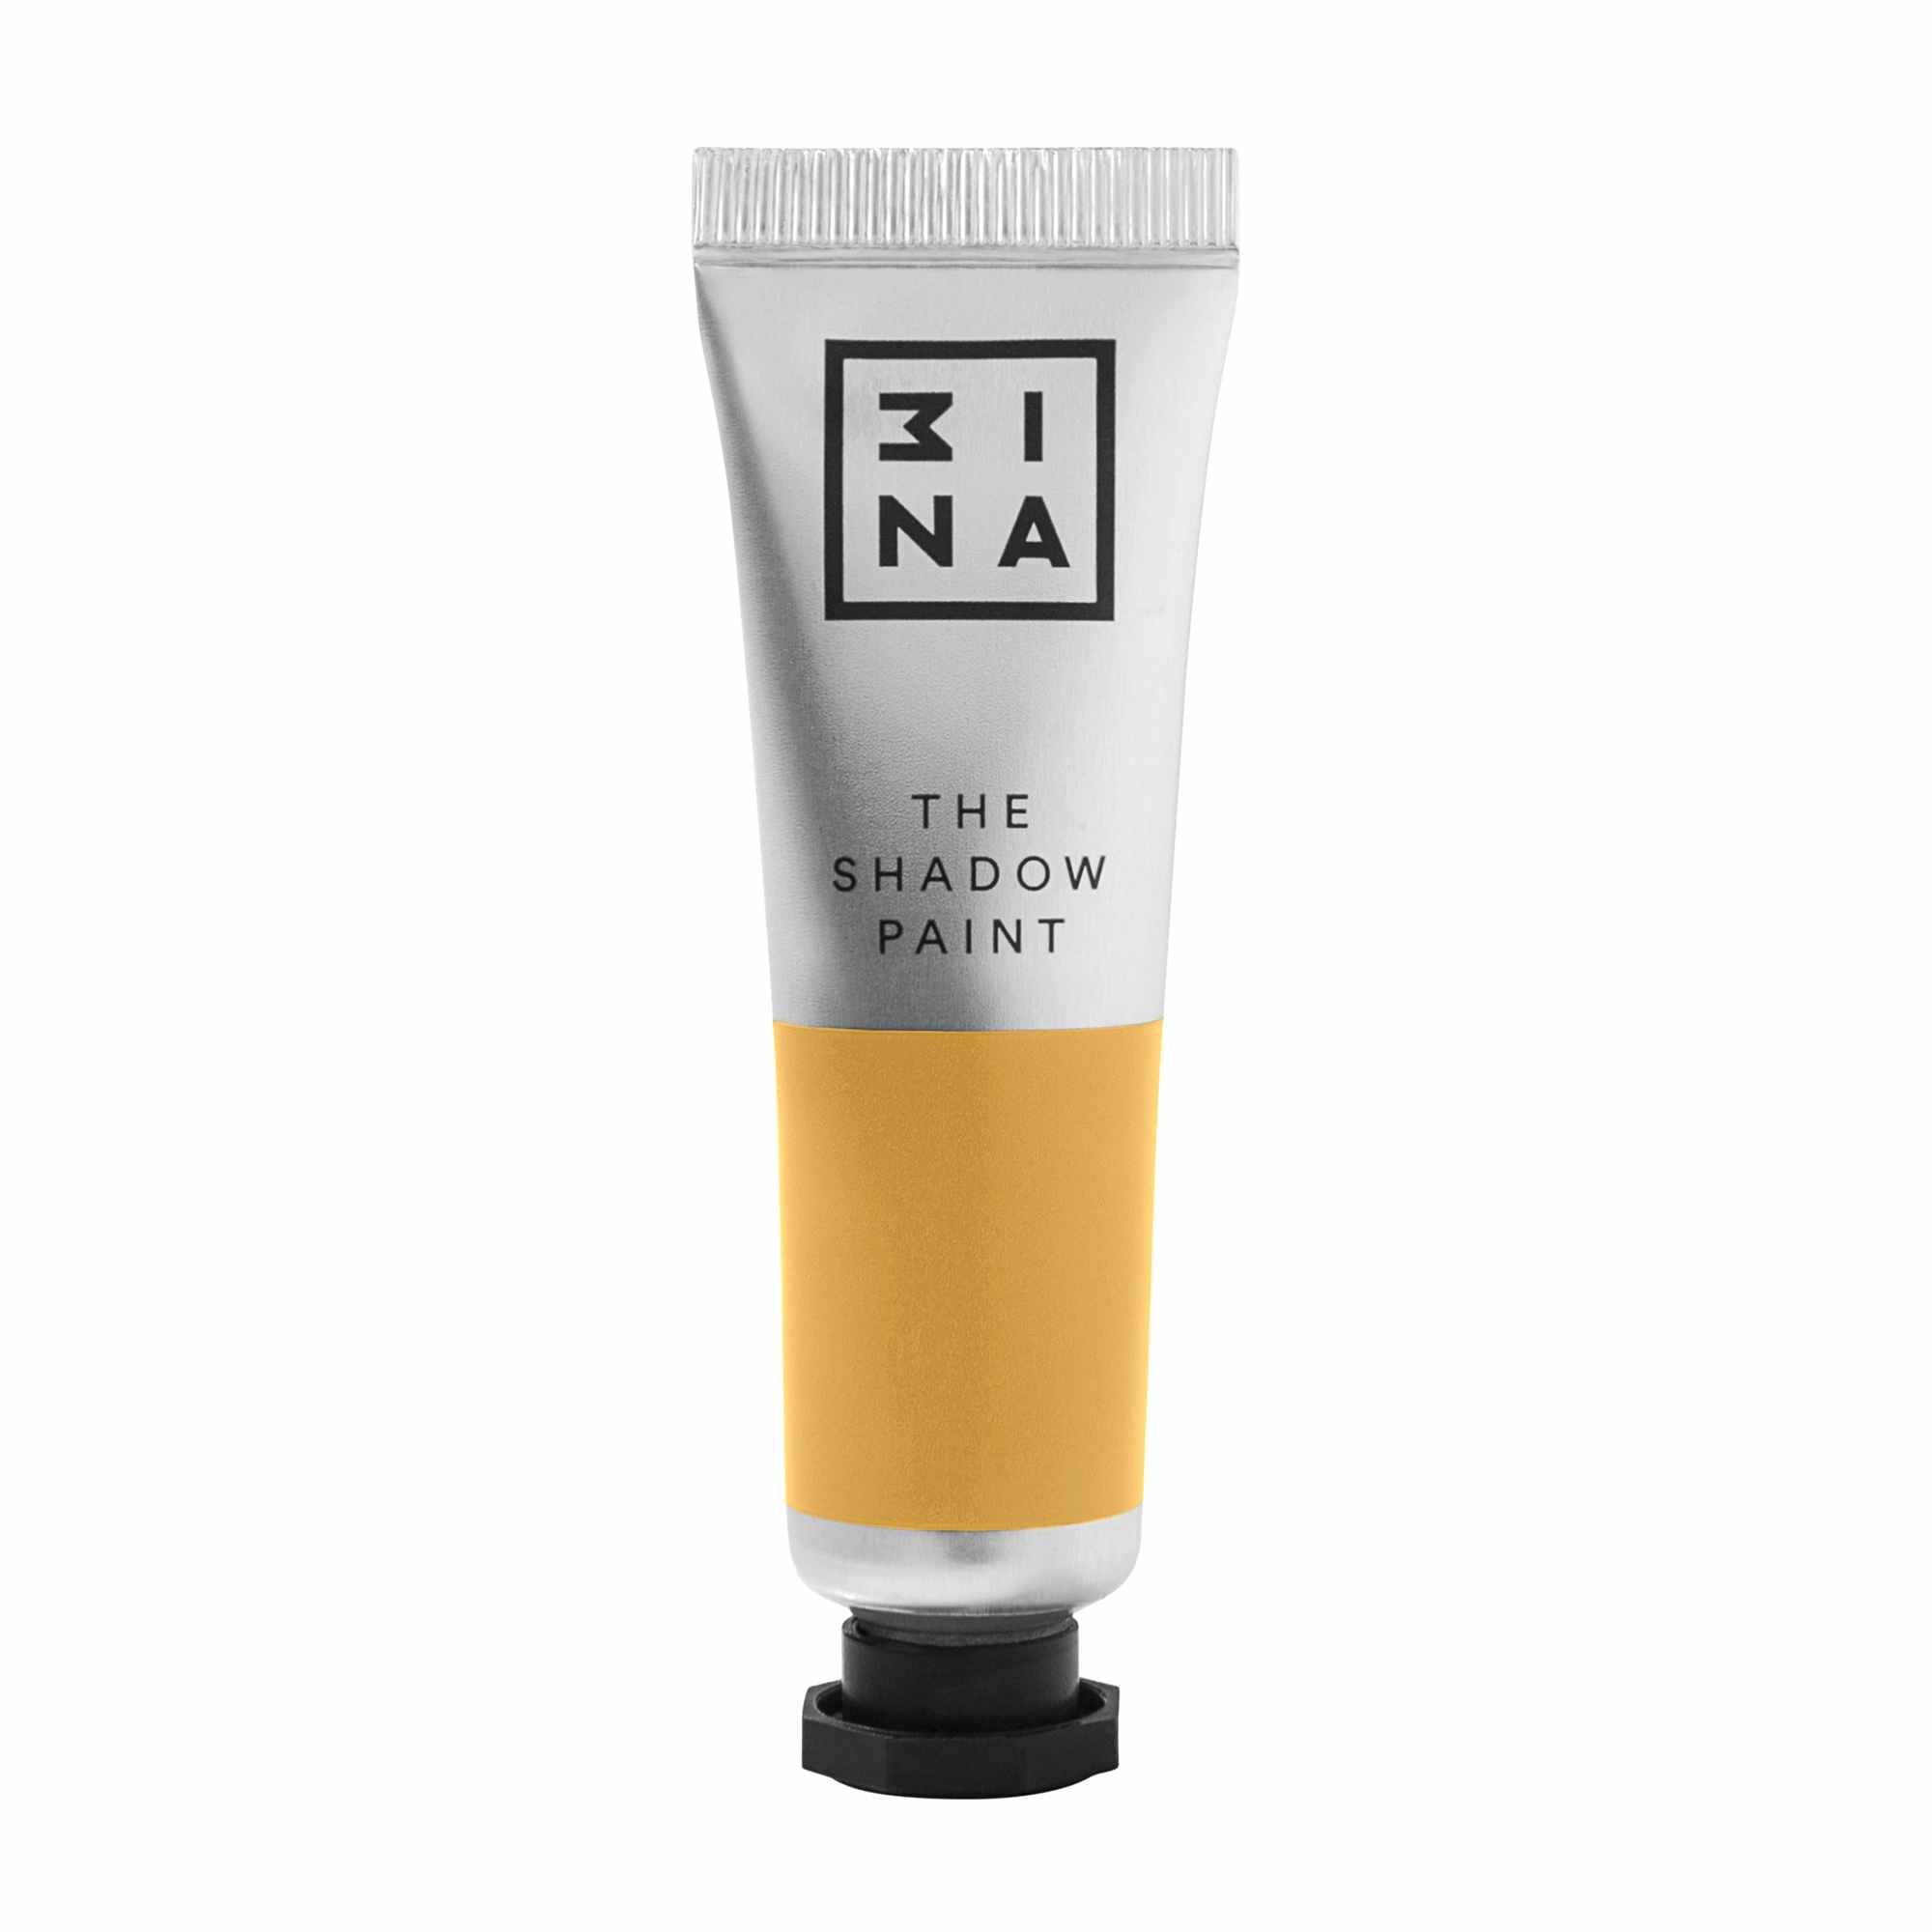 3INA Makeup | The Shadow Paint 701 Yellow